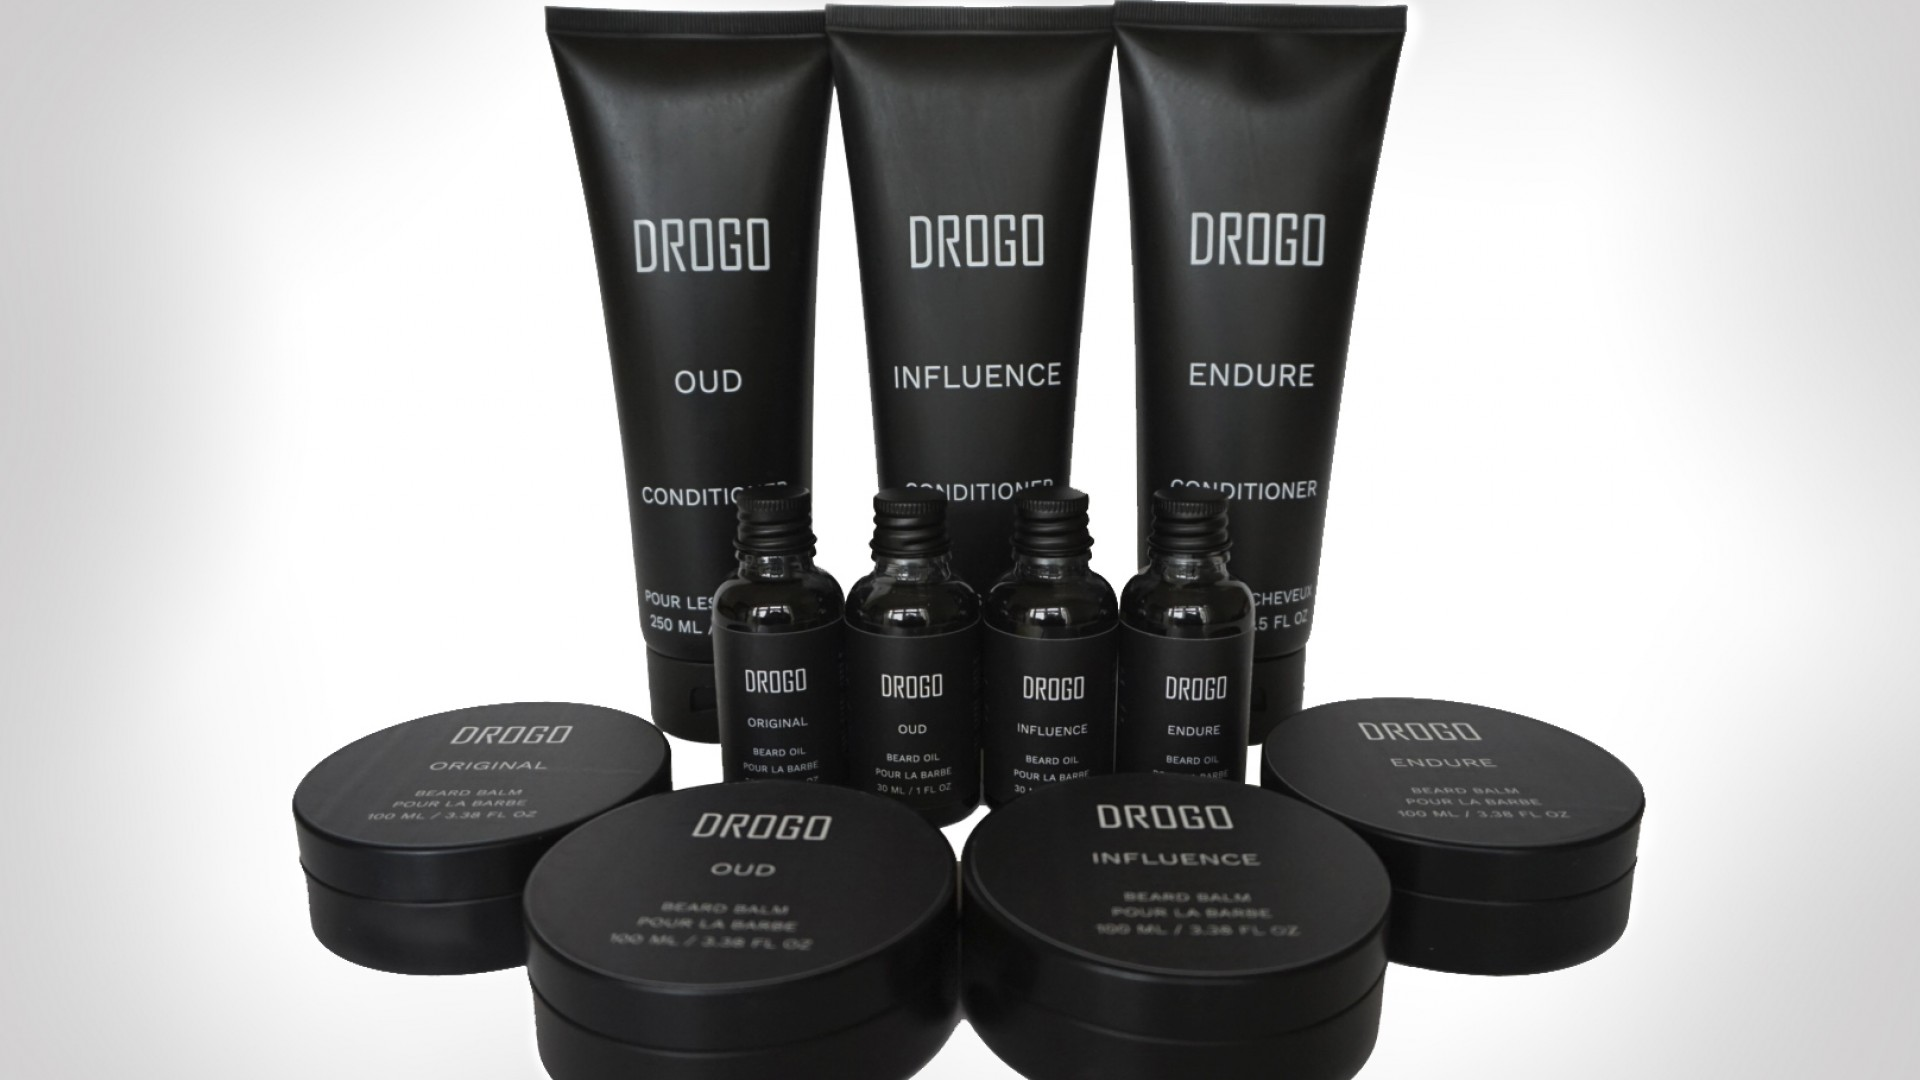 Drogo grooming care